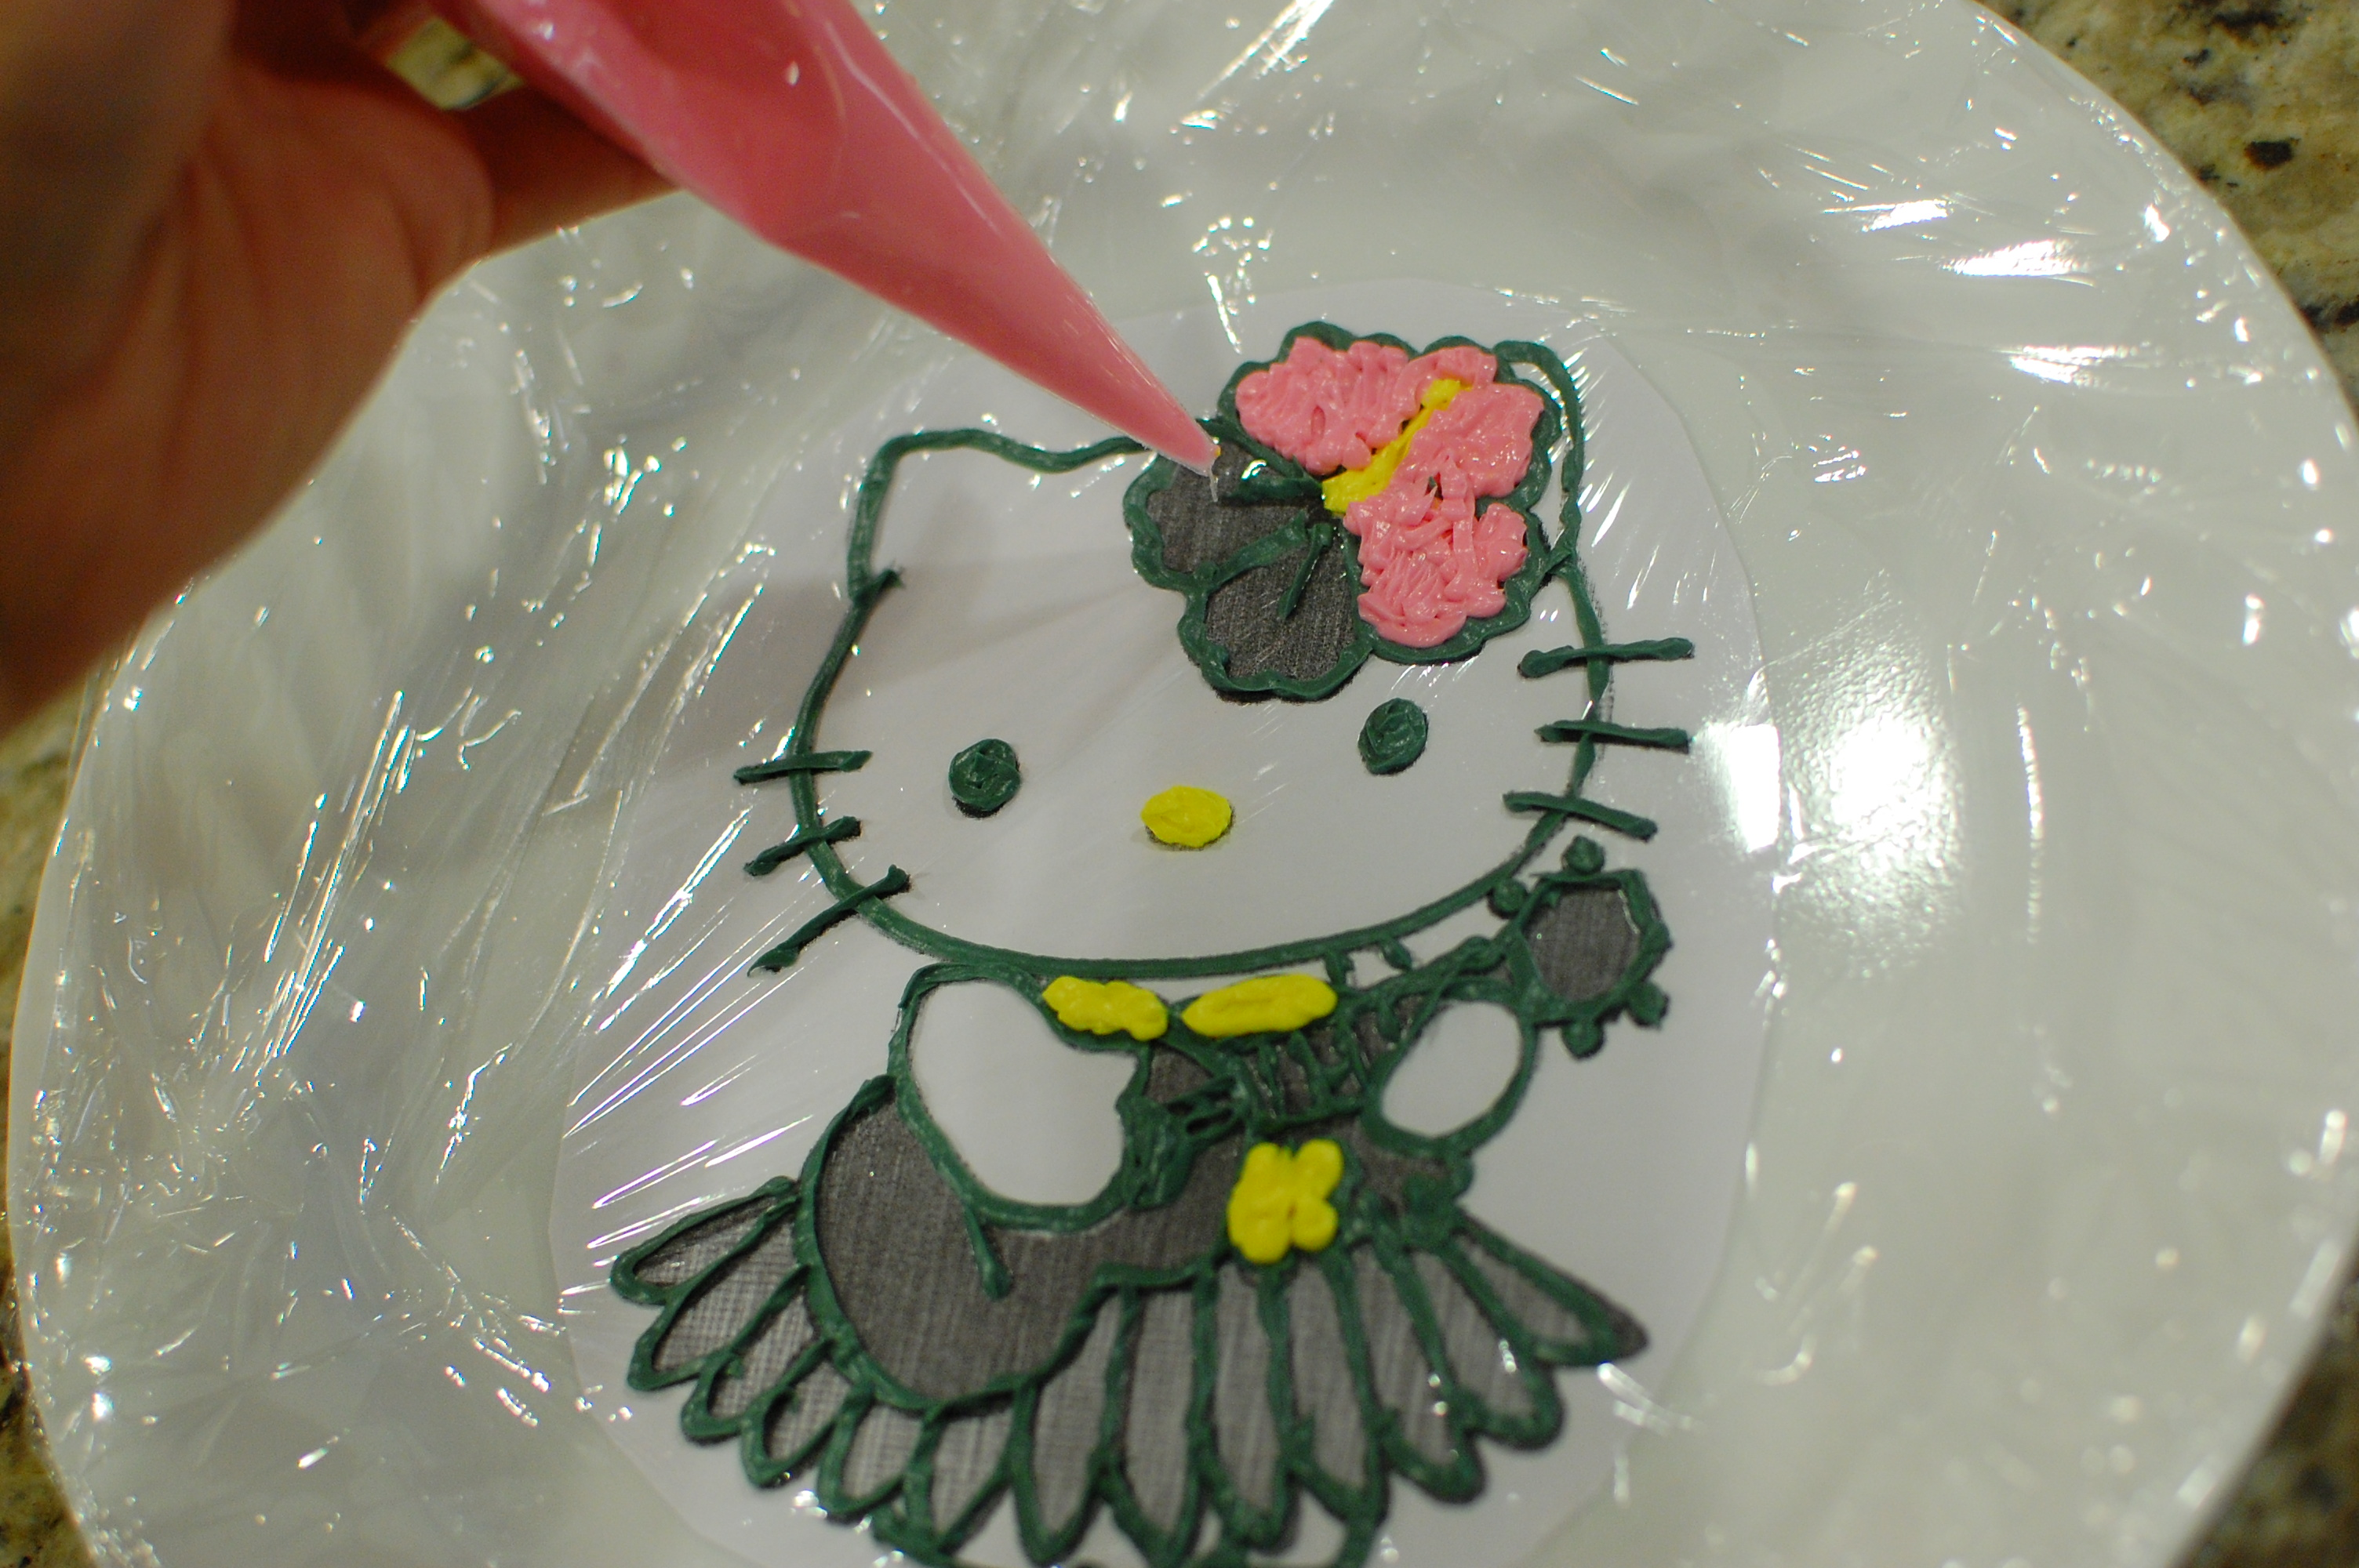 Hello Kitty Icing Cake Design : Hello Kitty Cake (how to make frosting transfers for easy ...